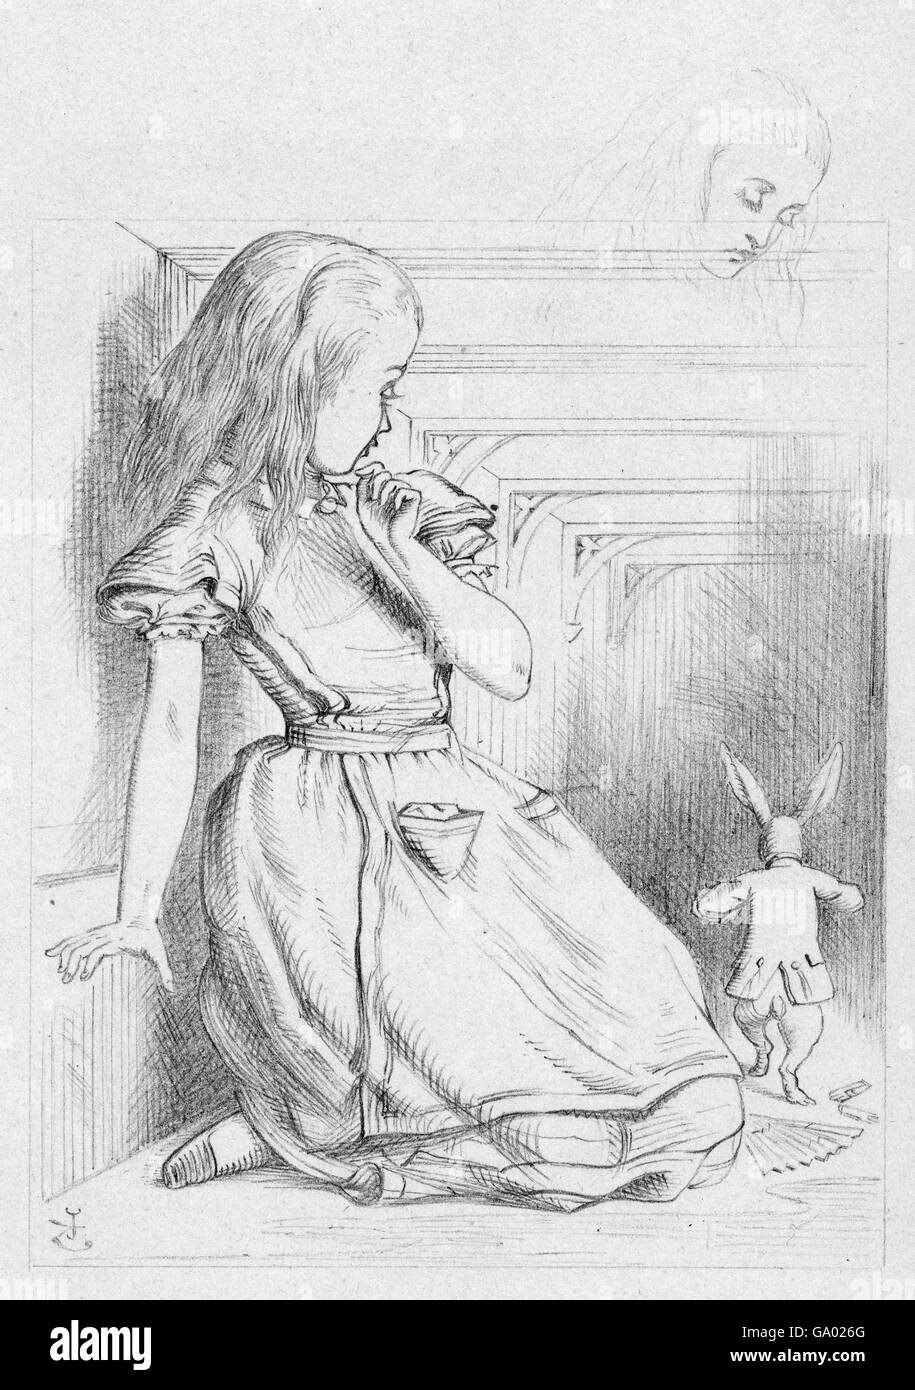 Alice in Wonderland. 'The Rabbit Scurried', an illustration by Sir John Tenniel for Lewis Carroll's - Stock Image